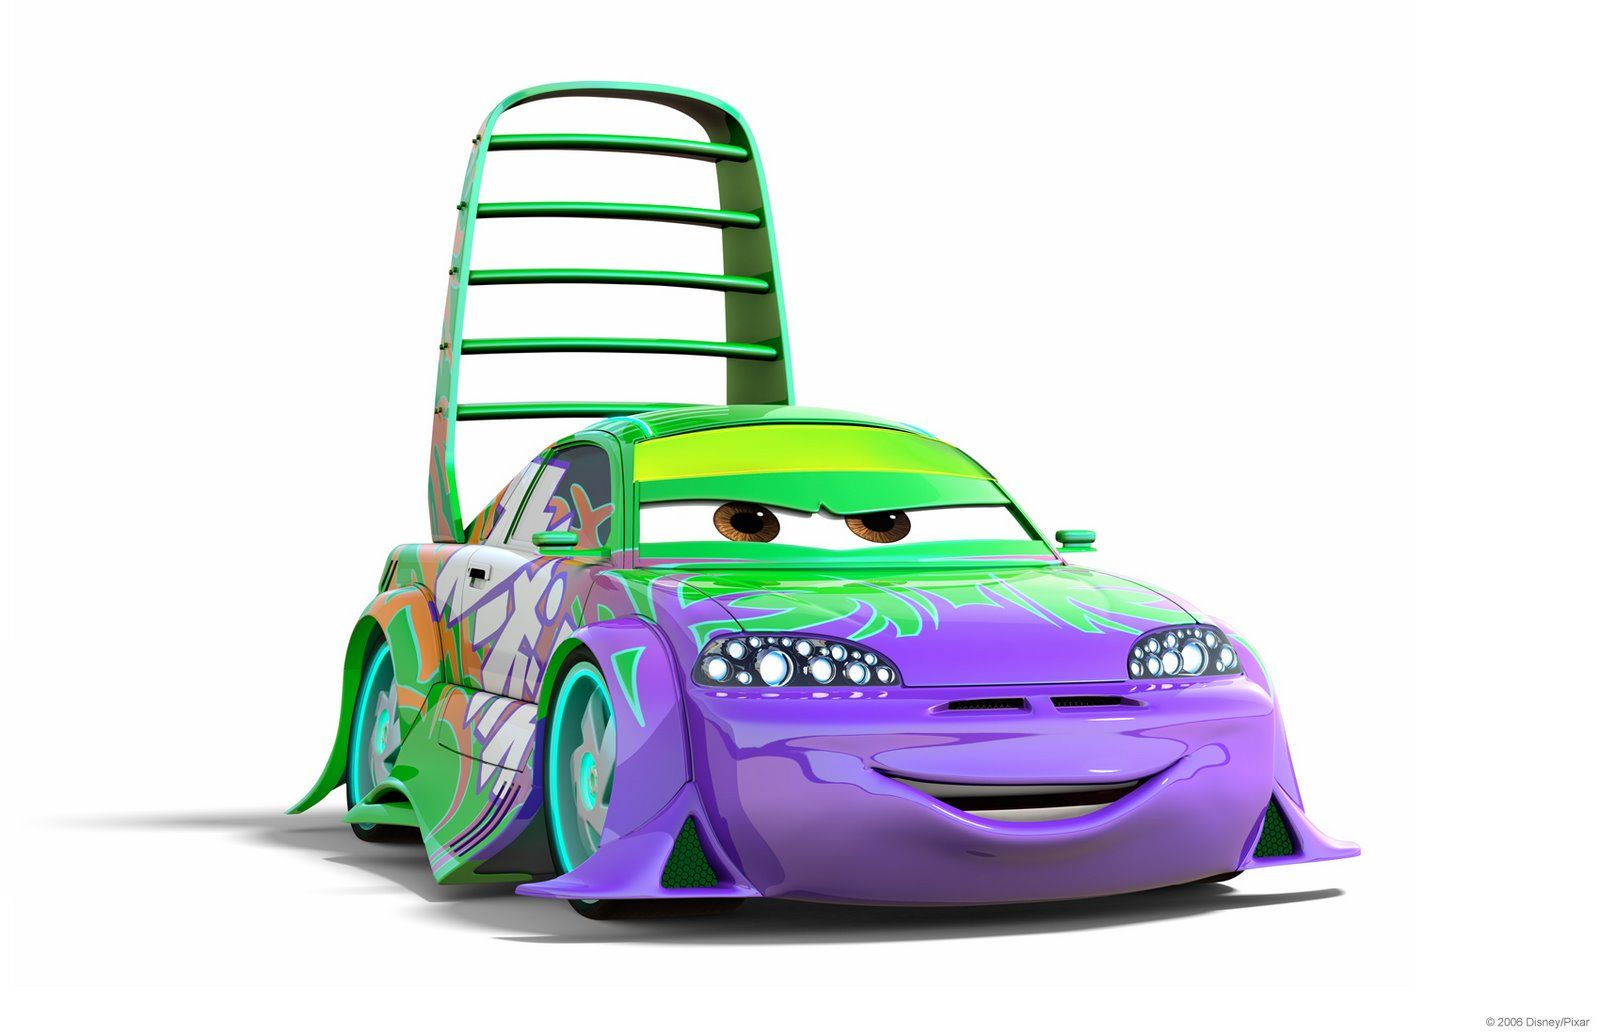 Wingo is a minor antagonist in the 2006 animated film cars